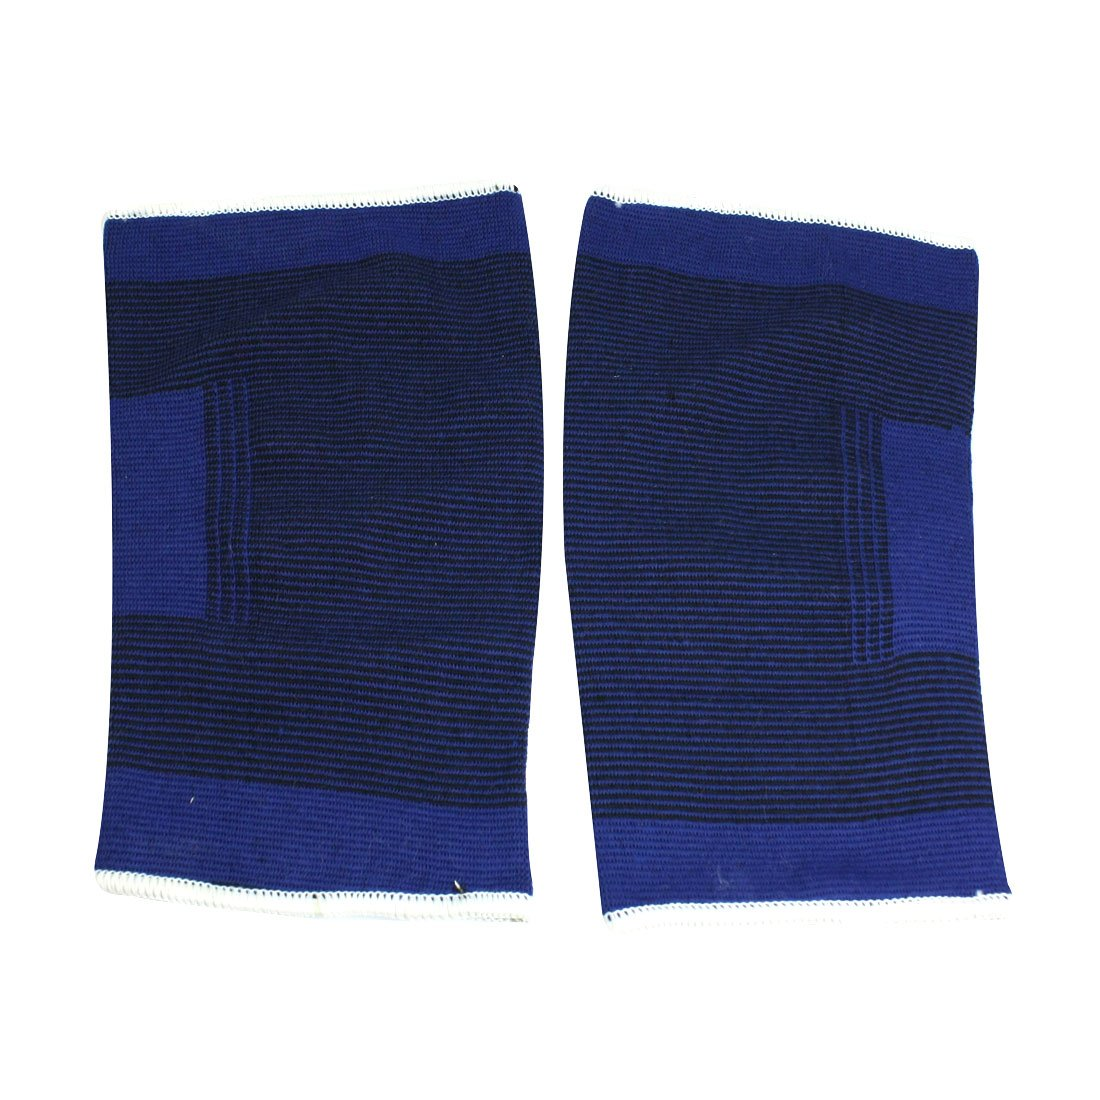 Fitting Stretchy Black Blue Knee Sleeve Support Protector 2 Pcs